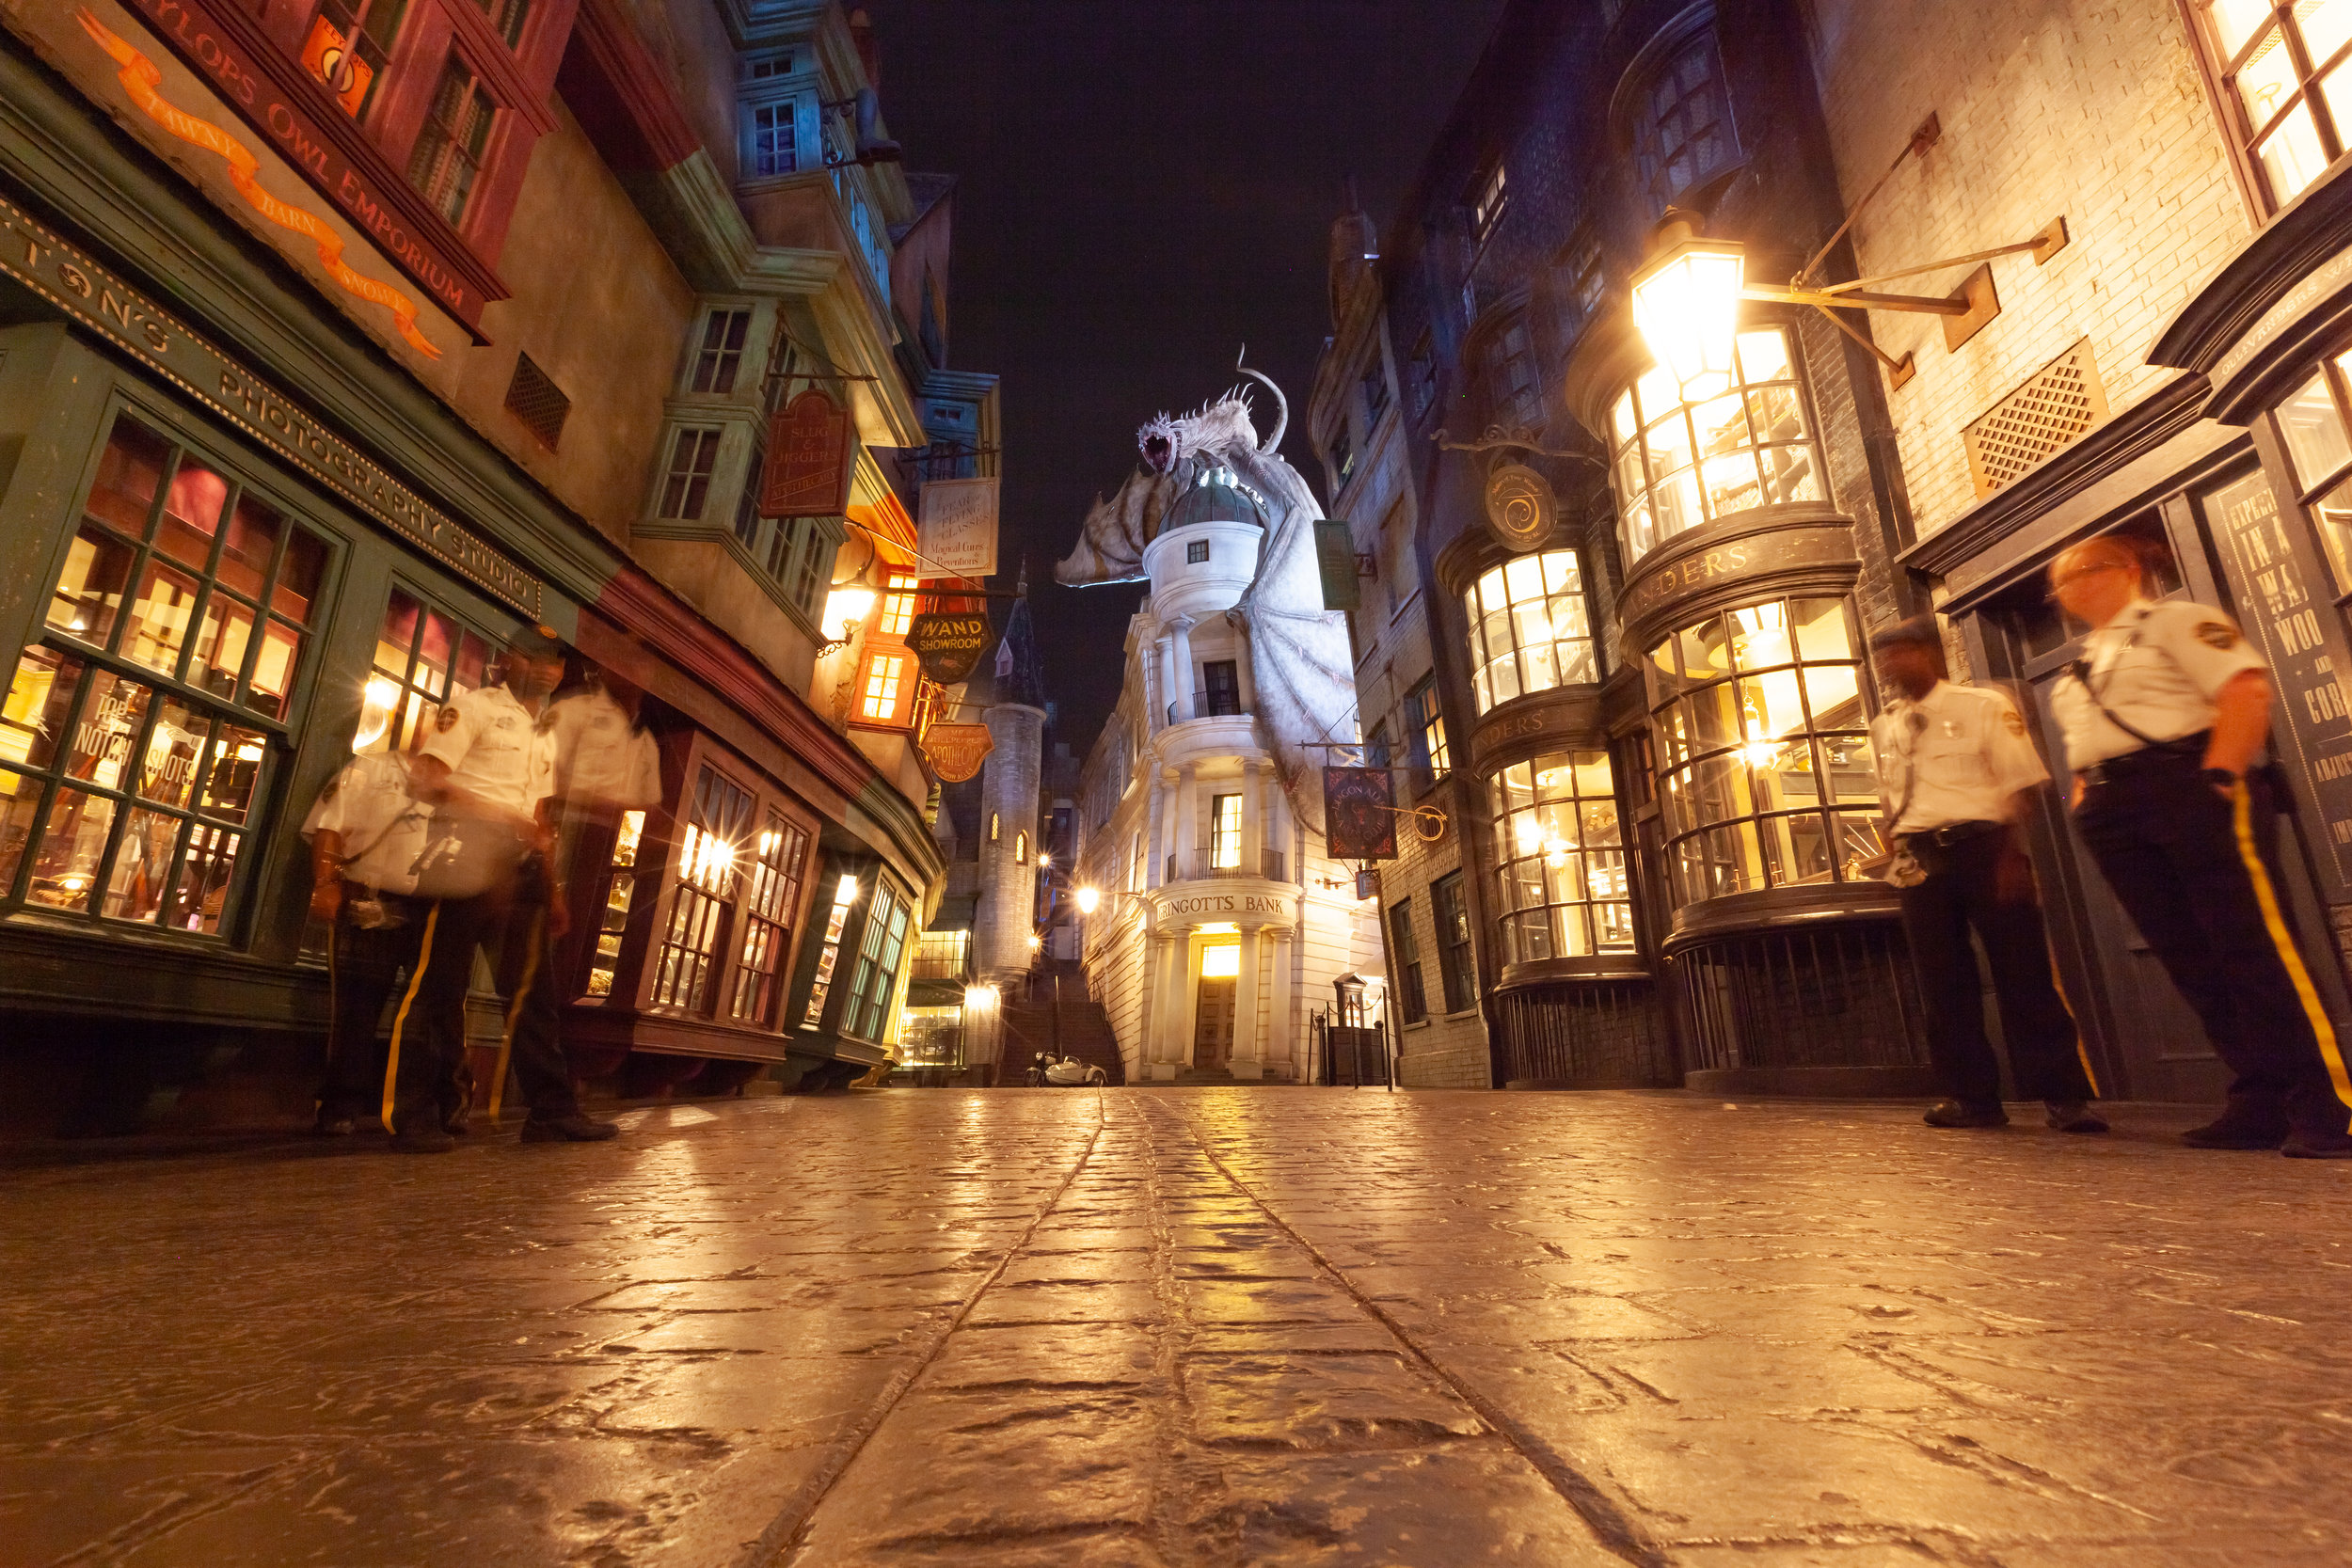 Thanks to my Platypod Ultra, I was able to get the shot I was dreaming about with the perfect low angle that draws you straight into The Wizarding World of Harry Potter.